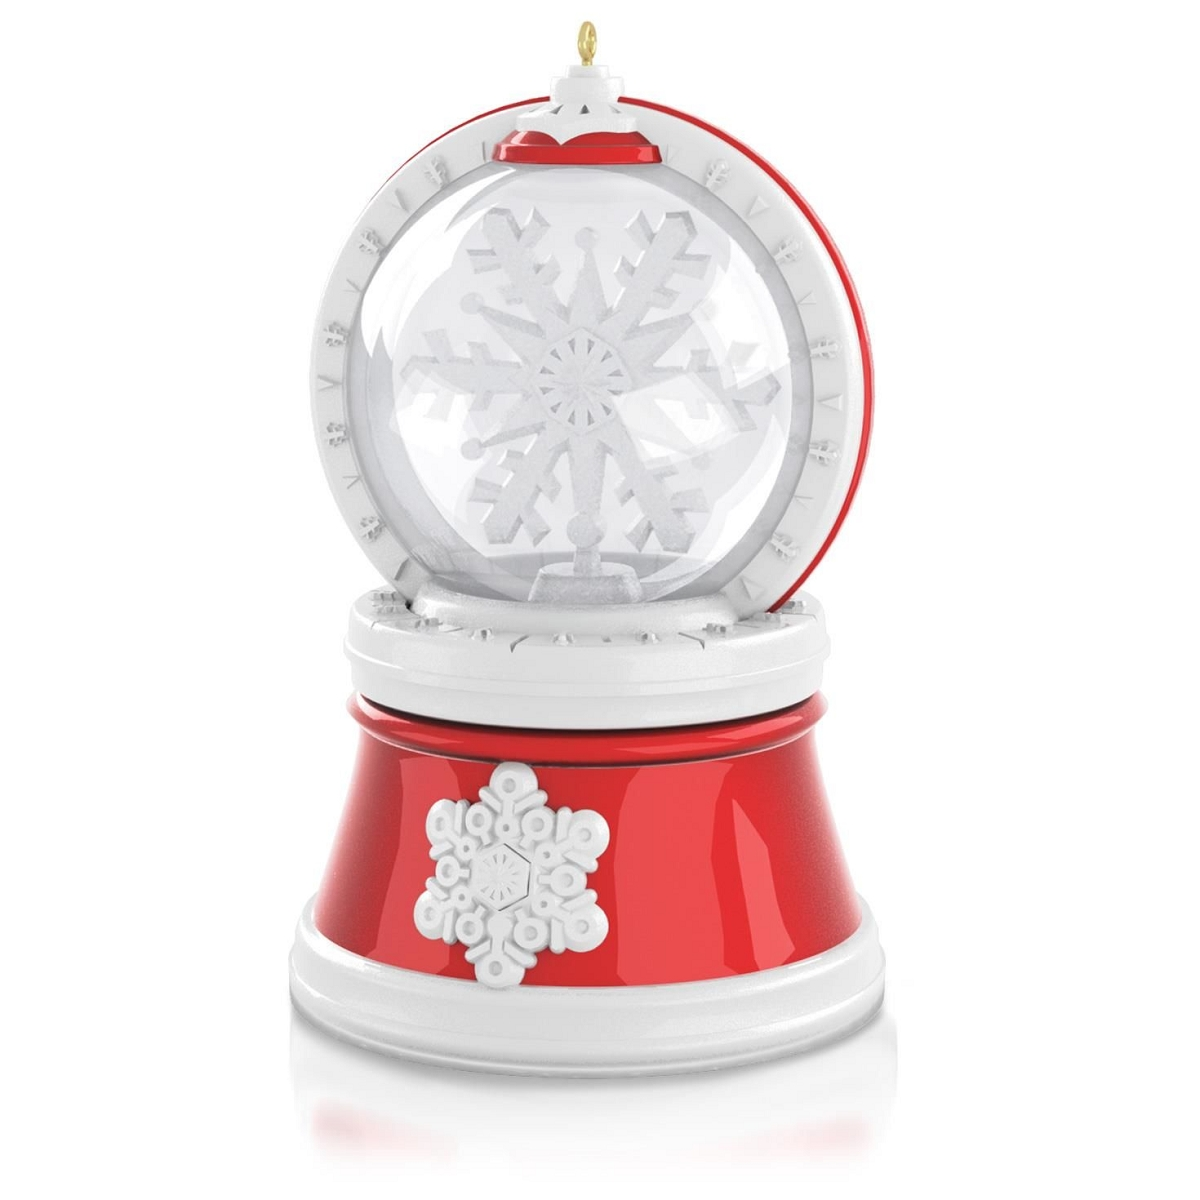 2015 Happiness Makes Magic Hallmark Keepsake Ornament